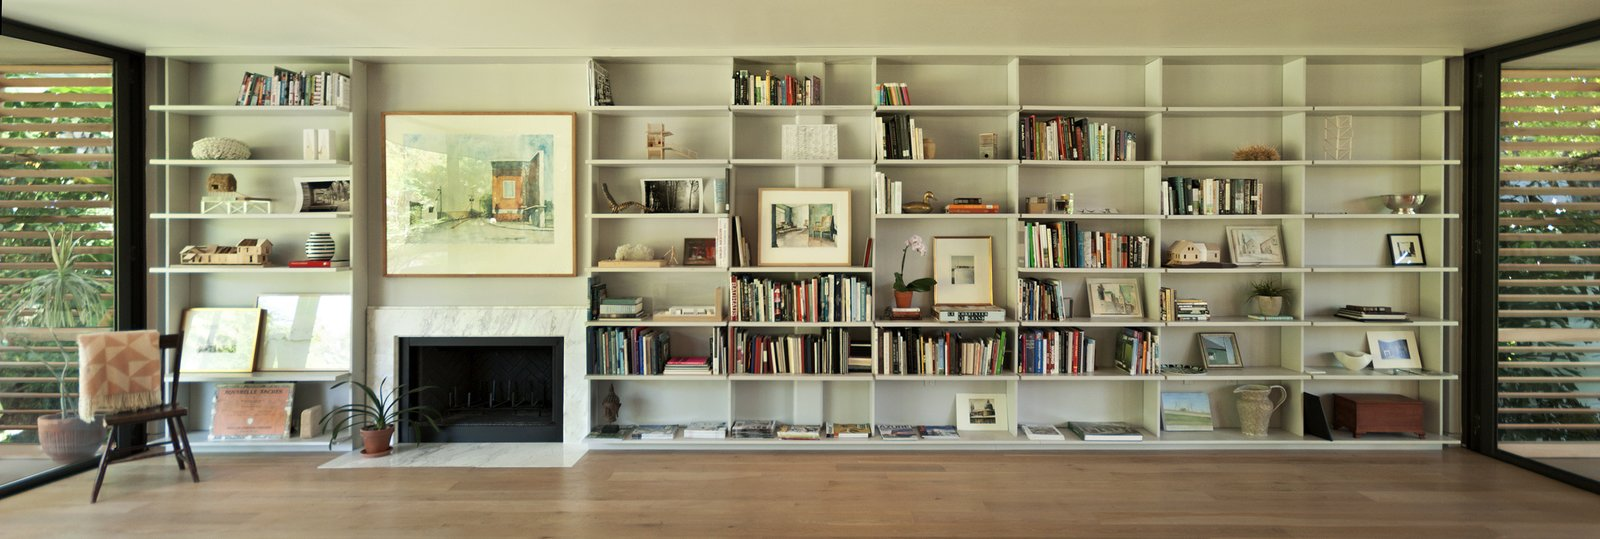 """In the living room, the Brillharts created a """"unified, simple and clean design"""" that incorporated a bookcase and fireplace along the continuous 30-foot long anchor wall. The shelves are inset several inches away from the glass walls on either side. Each individual layer cantilevers outwards to create a floating effect that mirrors the way the house itself floats above the ground."""